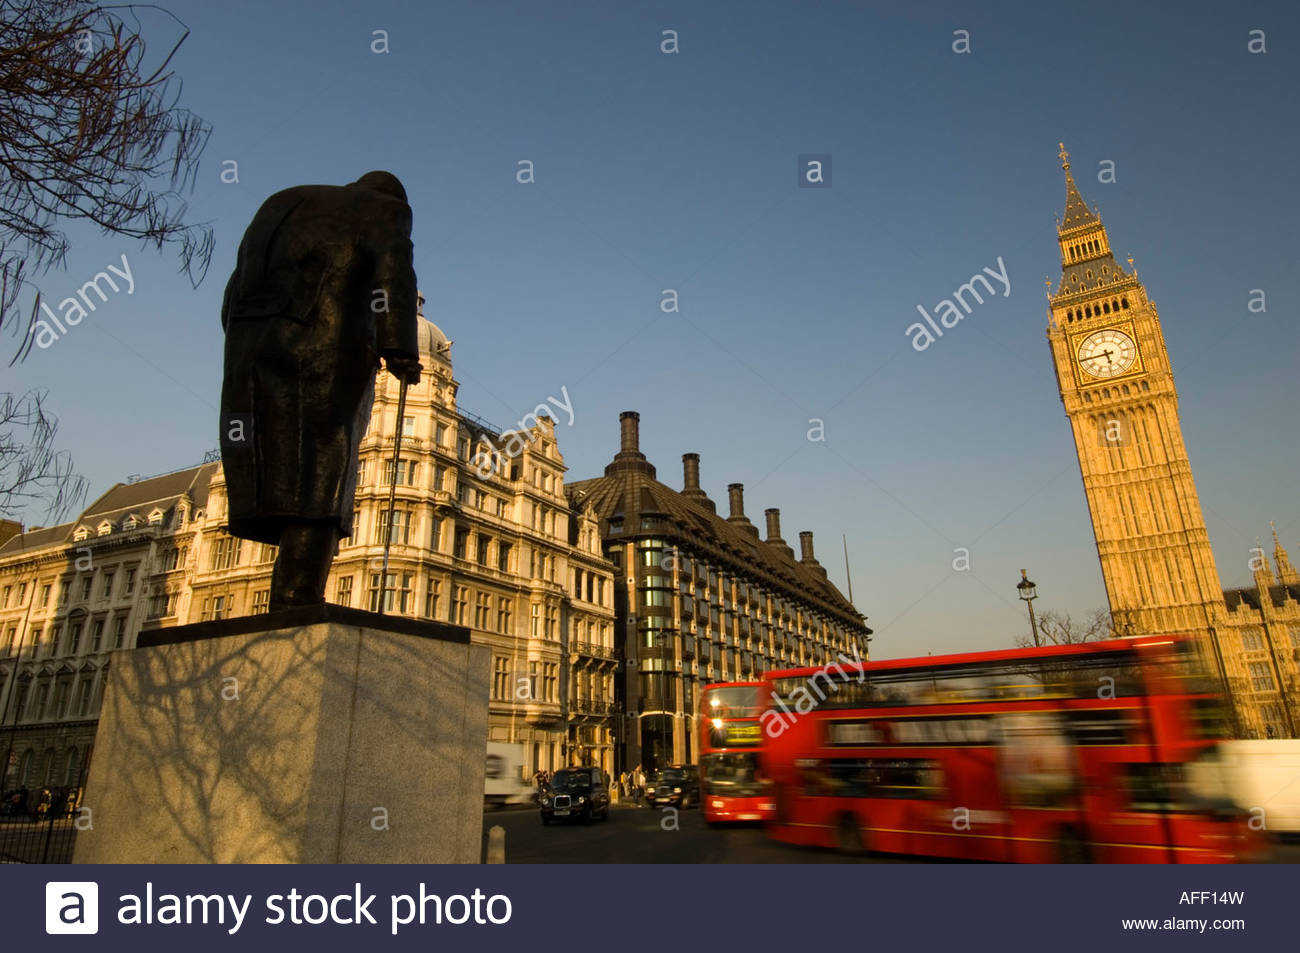 Statue Of Winston Churchill & Big Ben On Parliament Square - Stock Image